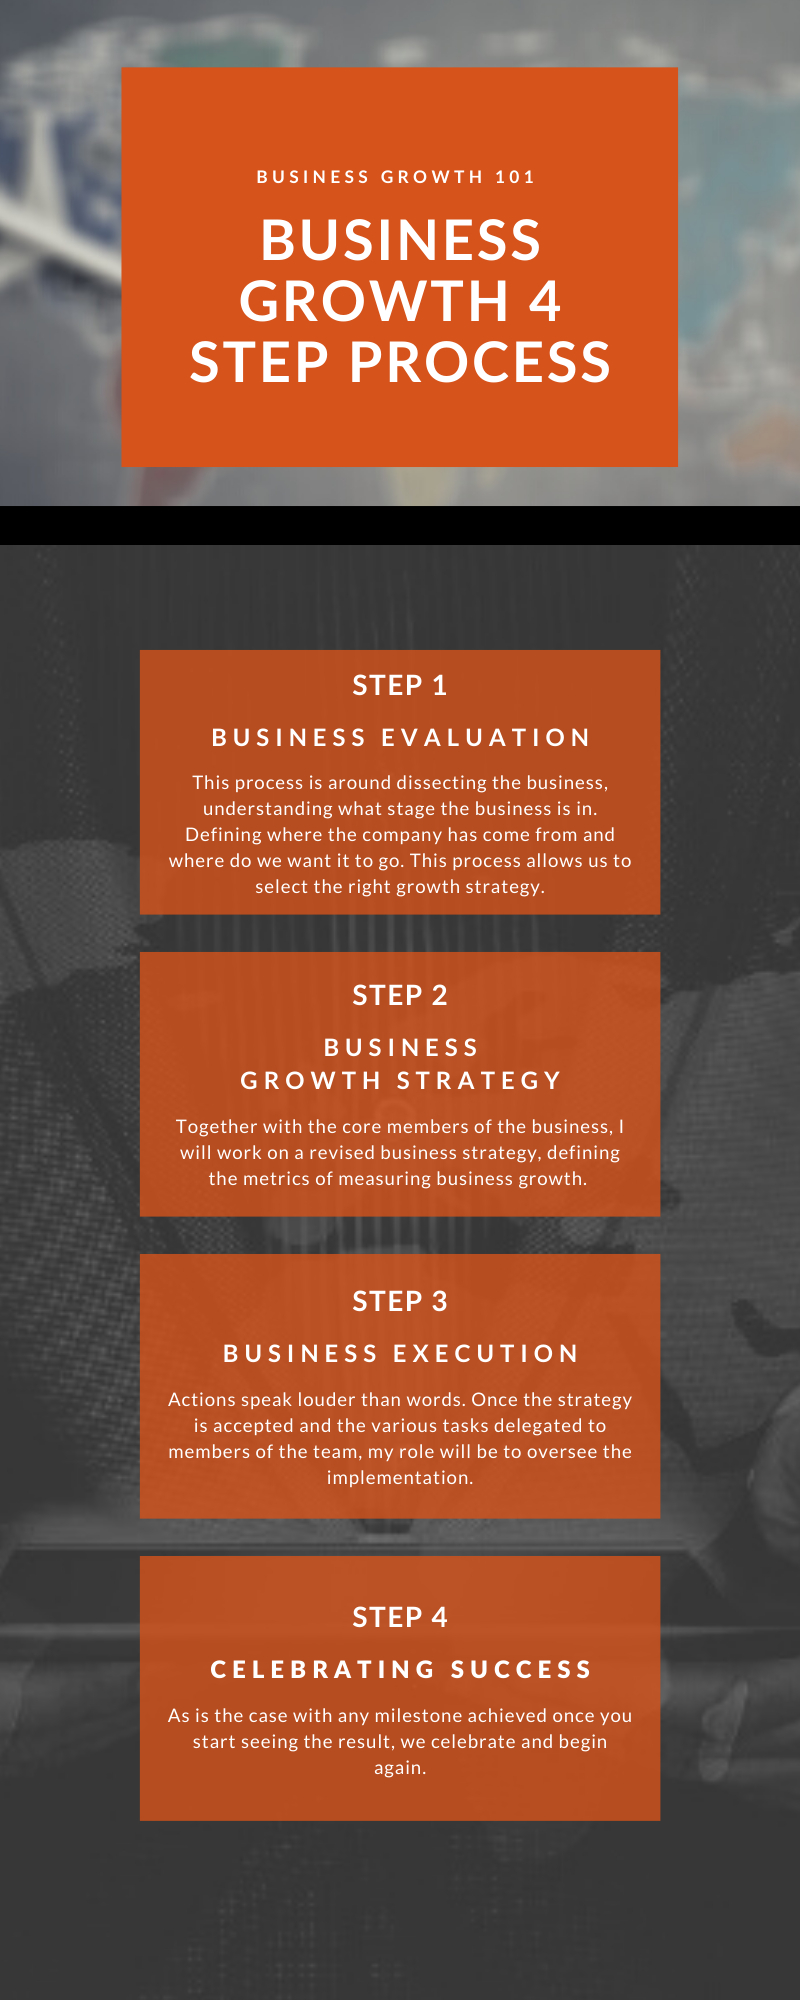 As a Business Growth Professional, I work with business executives and business owners offering business growth support by following a simple 4 step process.  Step 1 - Business Evaluation  This process is around dissecting the business, understanding what stage the business is in. Defining where the company has come from and where do we want it to go. This process allows us to select the right growth strategy.  Step 2 - Business Growth Strategy Together with the core members of the business, I will work on a revised business strategy, defining the metrics of measuring business growth success and defining opportunities to reposition the company for growth, either within the current market space or within new markets. This process does not necessarily mean physically expanding your footprint into new markets, but it may be a combination of reevaluating your product and customer mix.  Step 3 - Business Execution Actions speak louder than words. Once the strategy is accepted and the various tasks delegated to members of the team, my role will be to oversee the implementation. My hands-on approach will offer support, ensure that action is taken and results achieved.  Step 4 - Celebrating Success. As is the case with any milestone achieved once you start seeing the result, we celebrate and begin again.